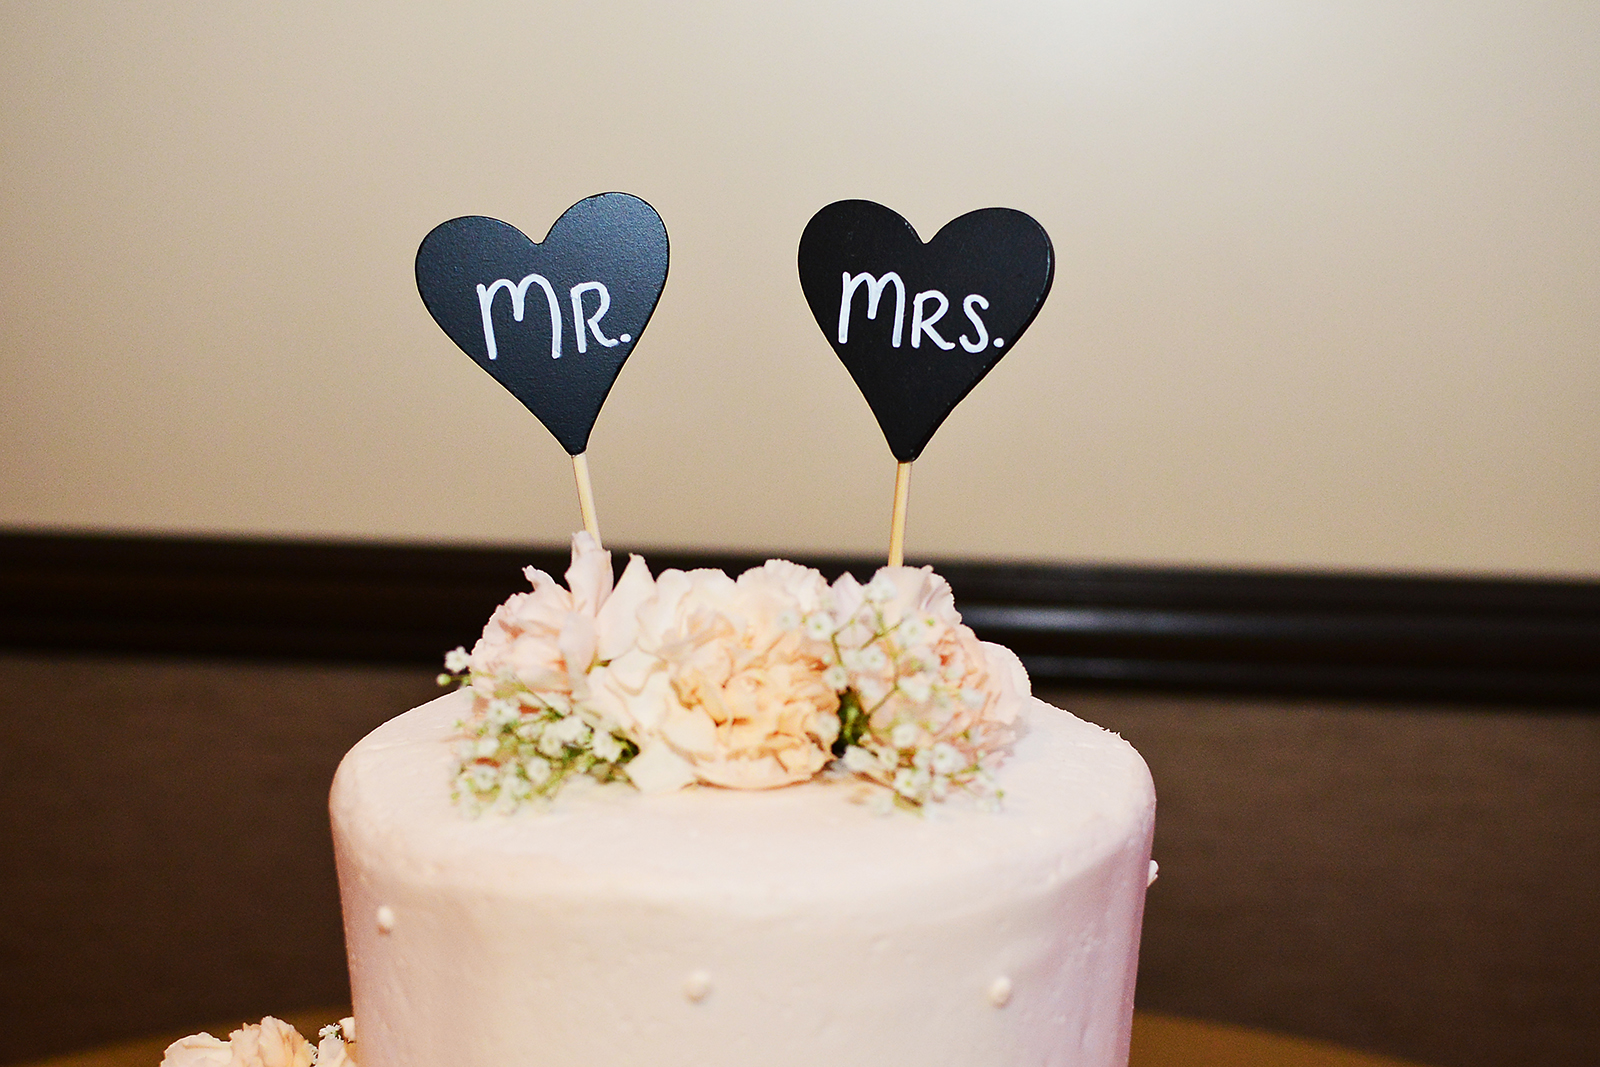 cake, wedding cake, stephy wong photography, wedding details, pala mesa wedding